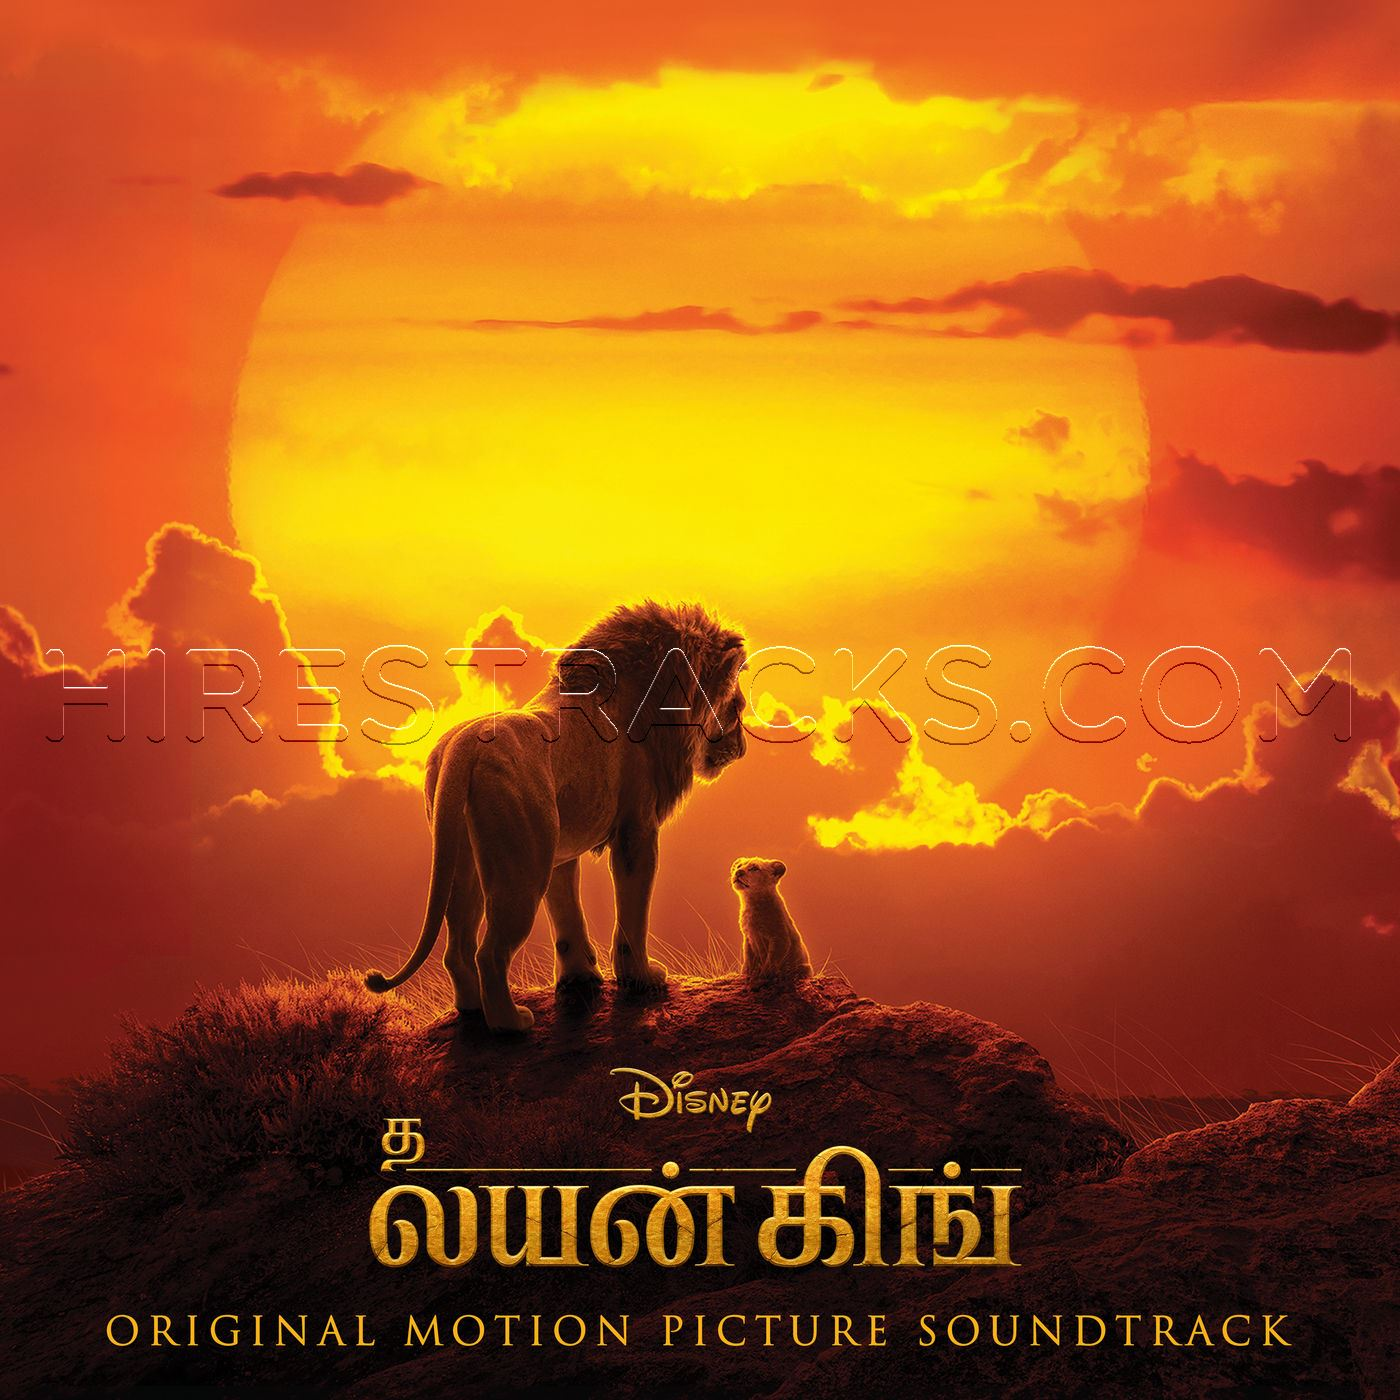 The Lion King [Tamil] (2019) (Various Artists) (Walt Disney Records) [Digital-DL-FLAC]